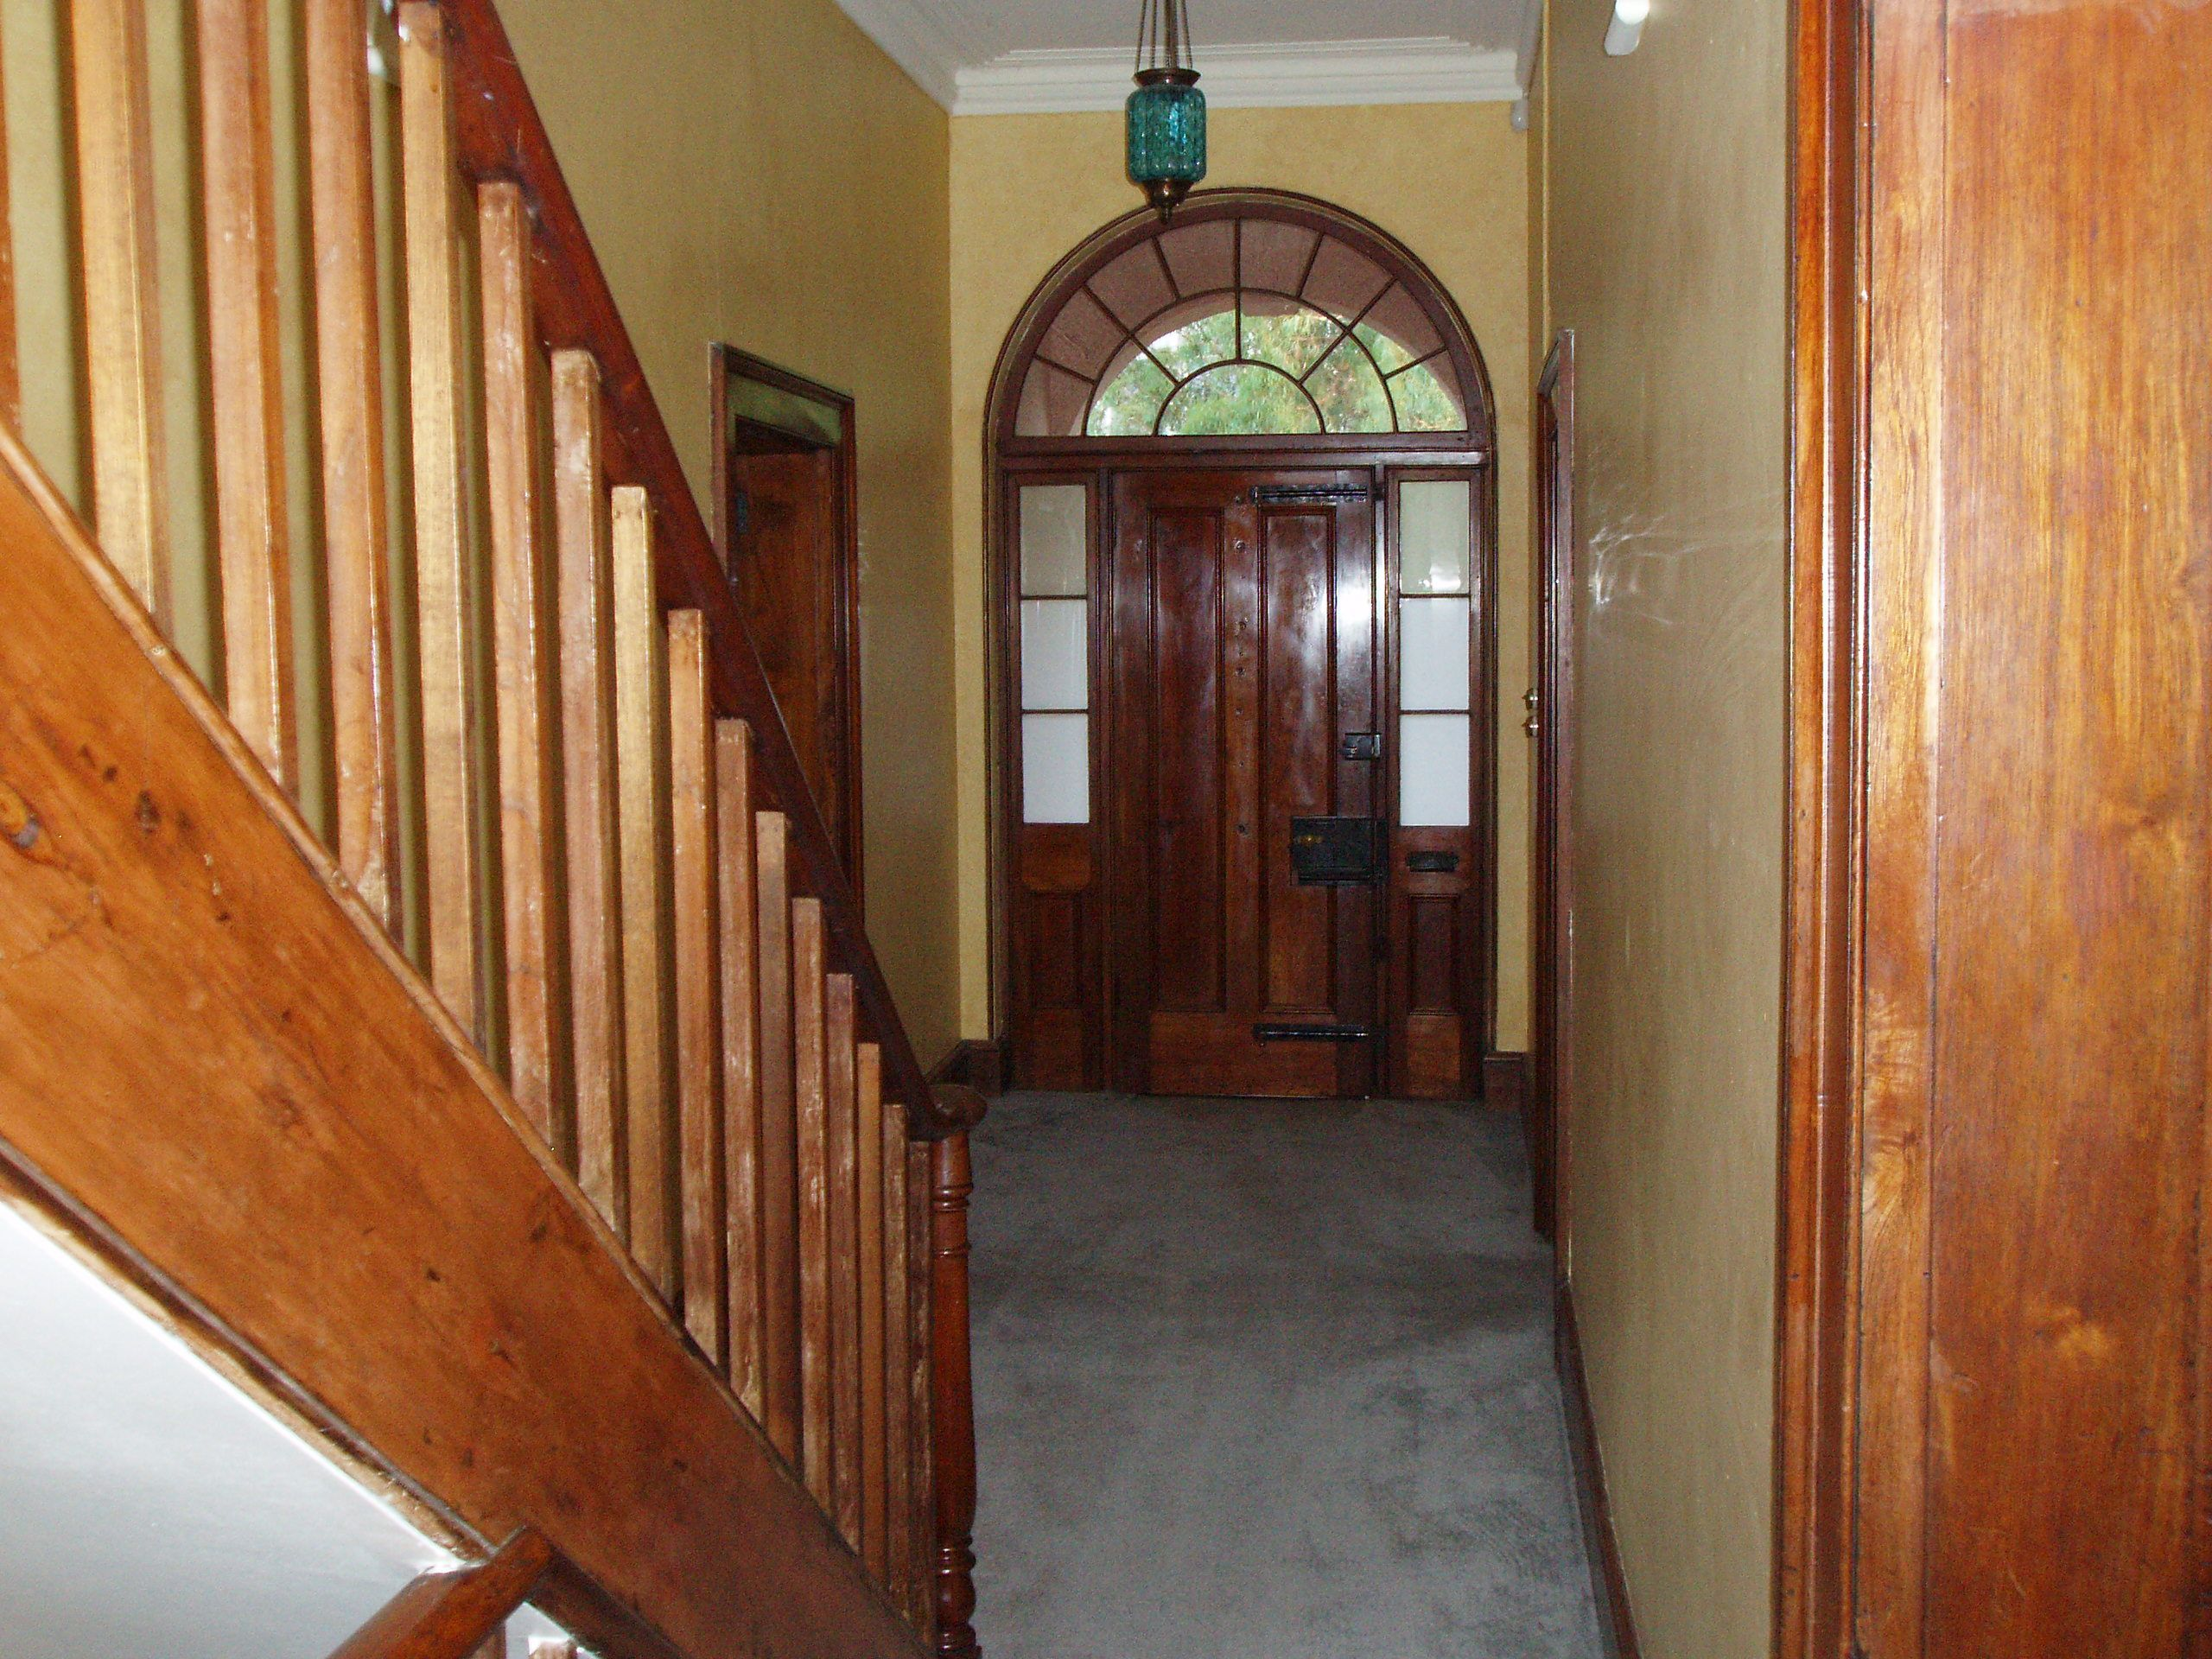 The day we took ownership of the home, the front door